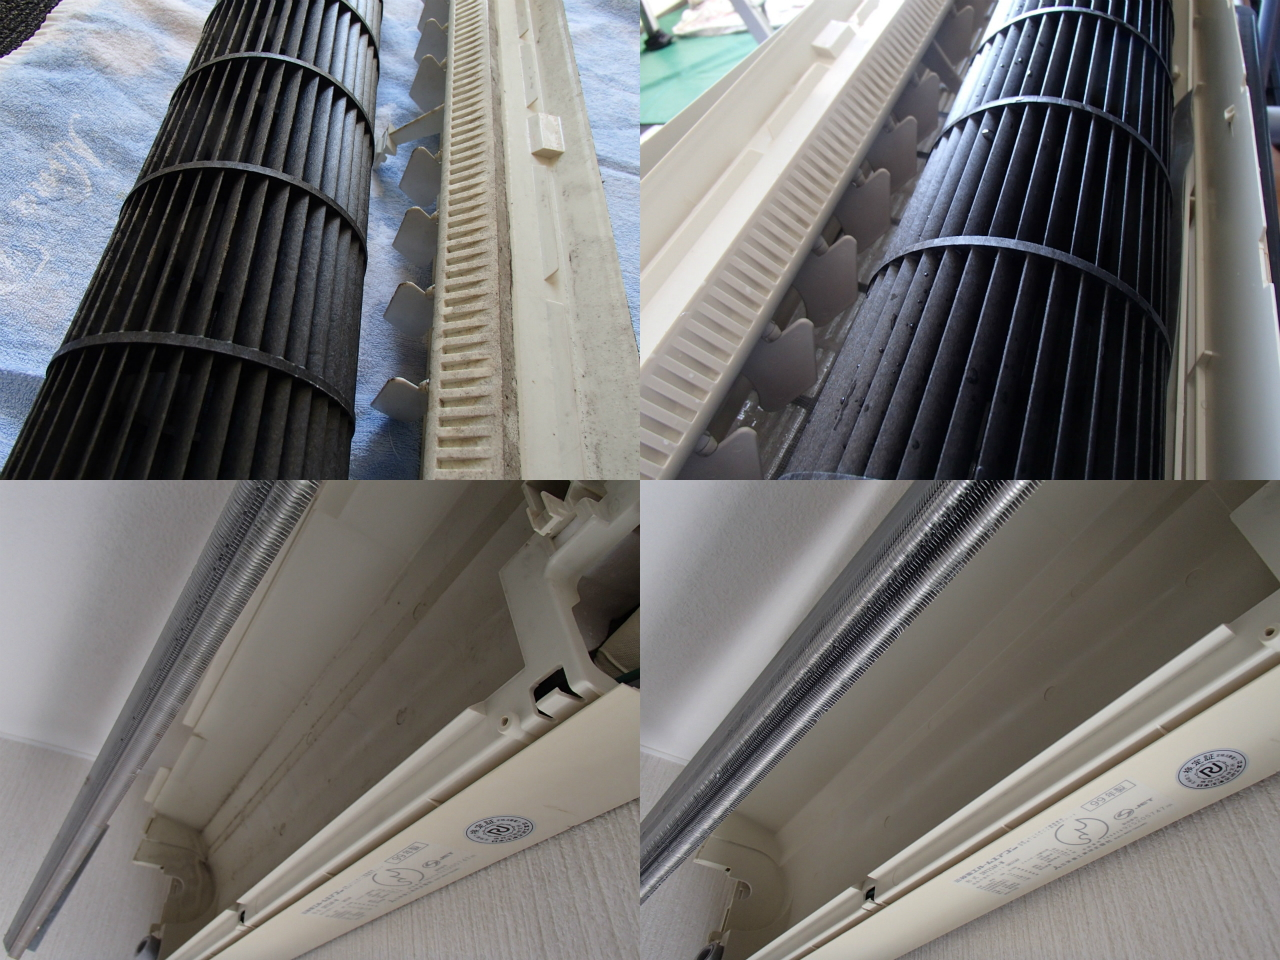 http://ajras.net/images/120907-aircon2.jpg